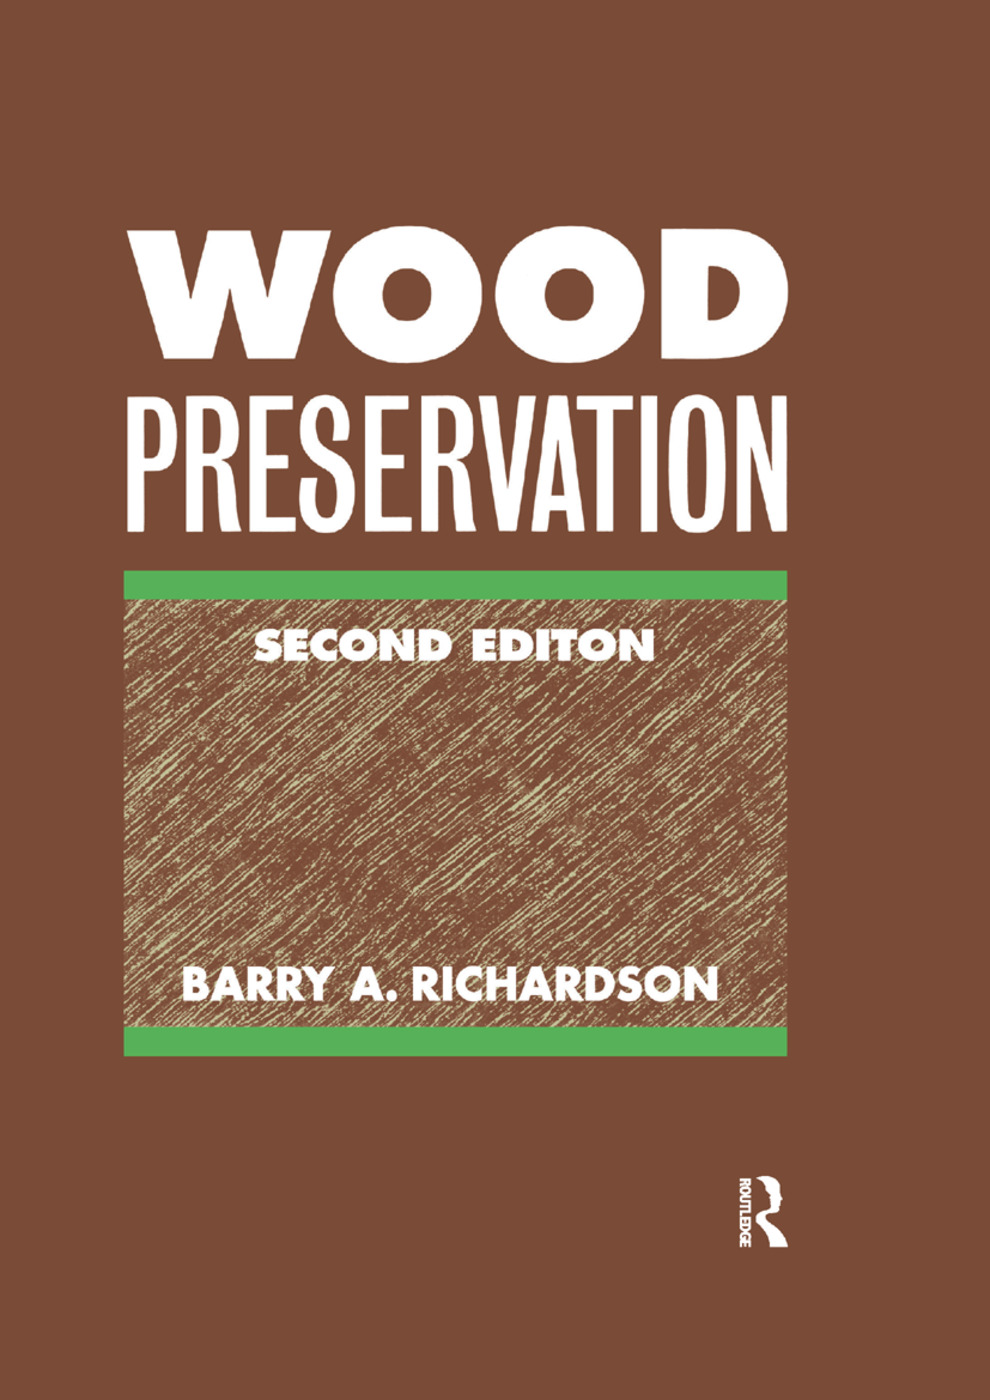 Wood Preservation book cover